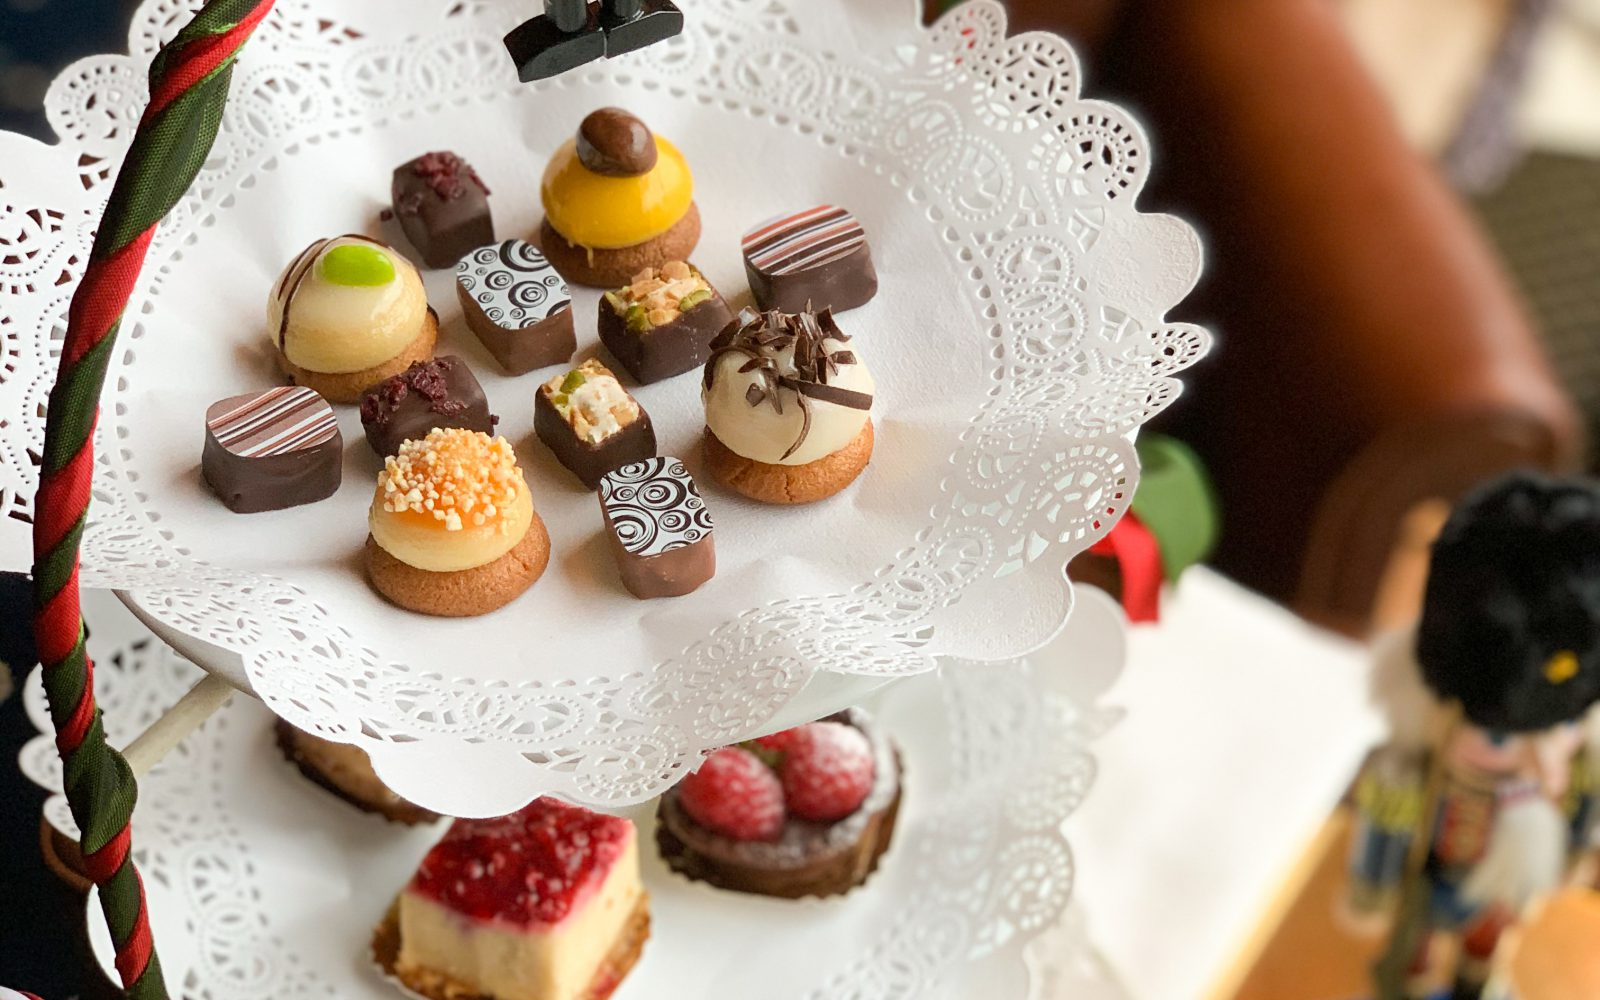 The Nutcracker Afternoon Tea